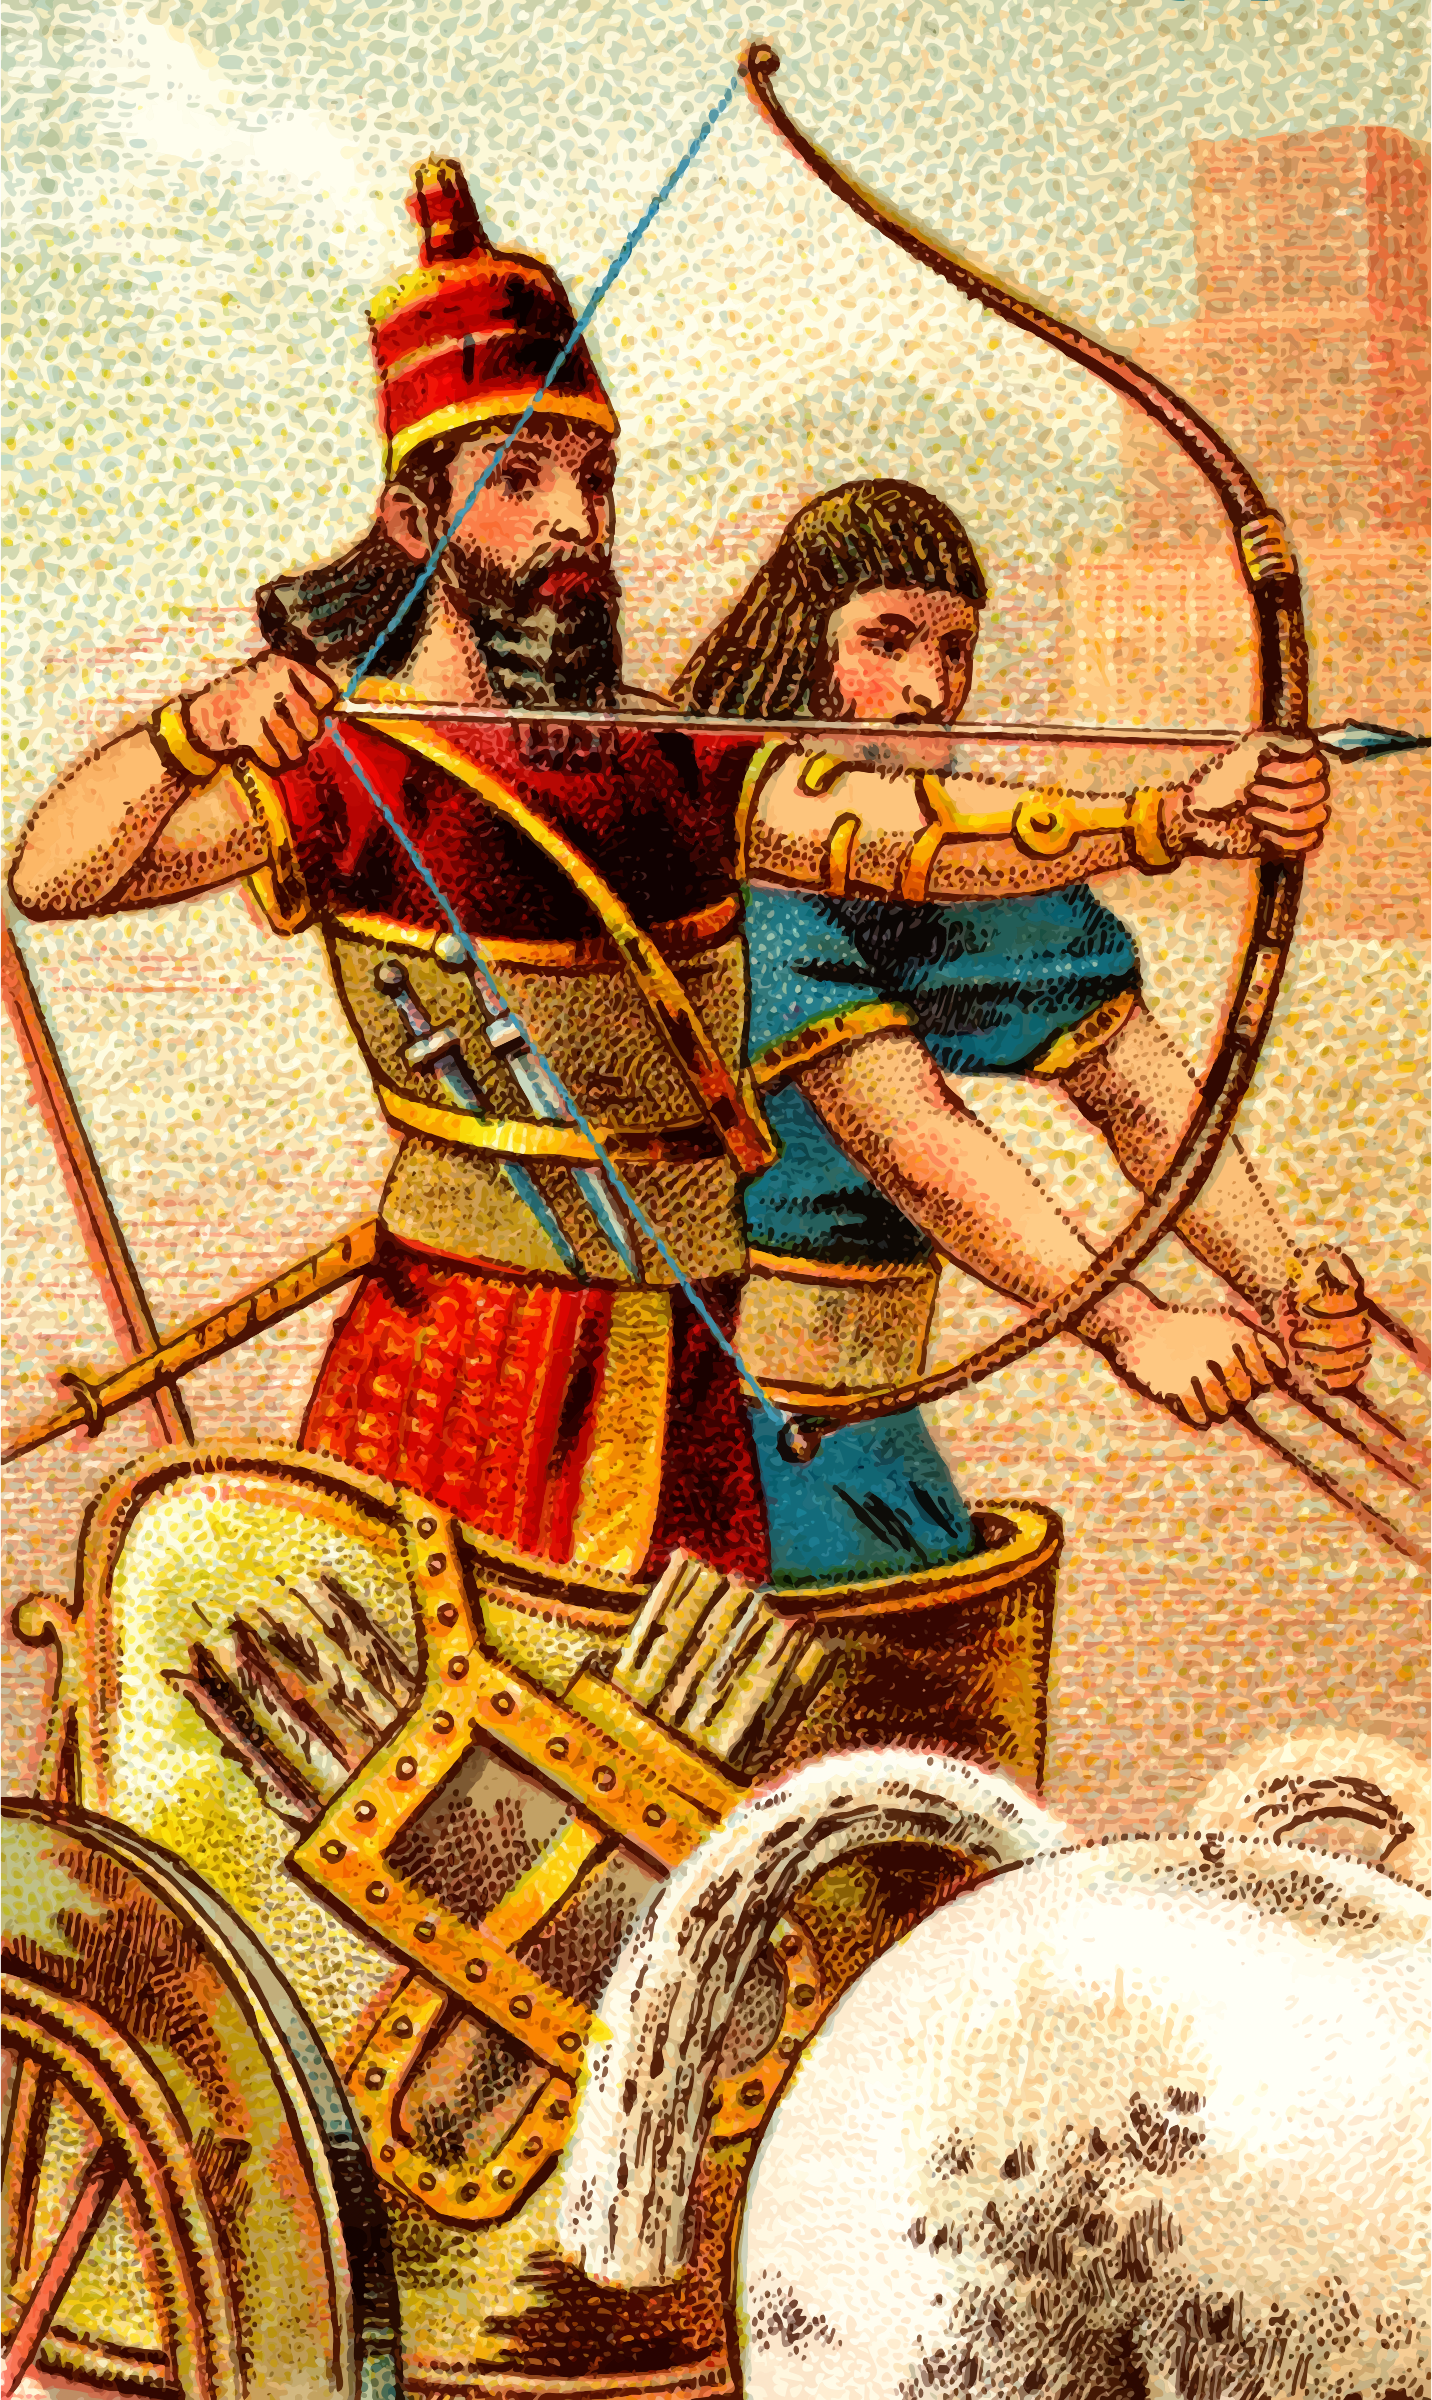 Cigarette card - Bow and Arrow by Firkin